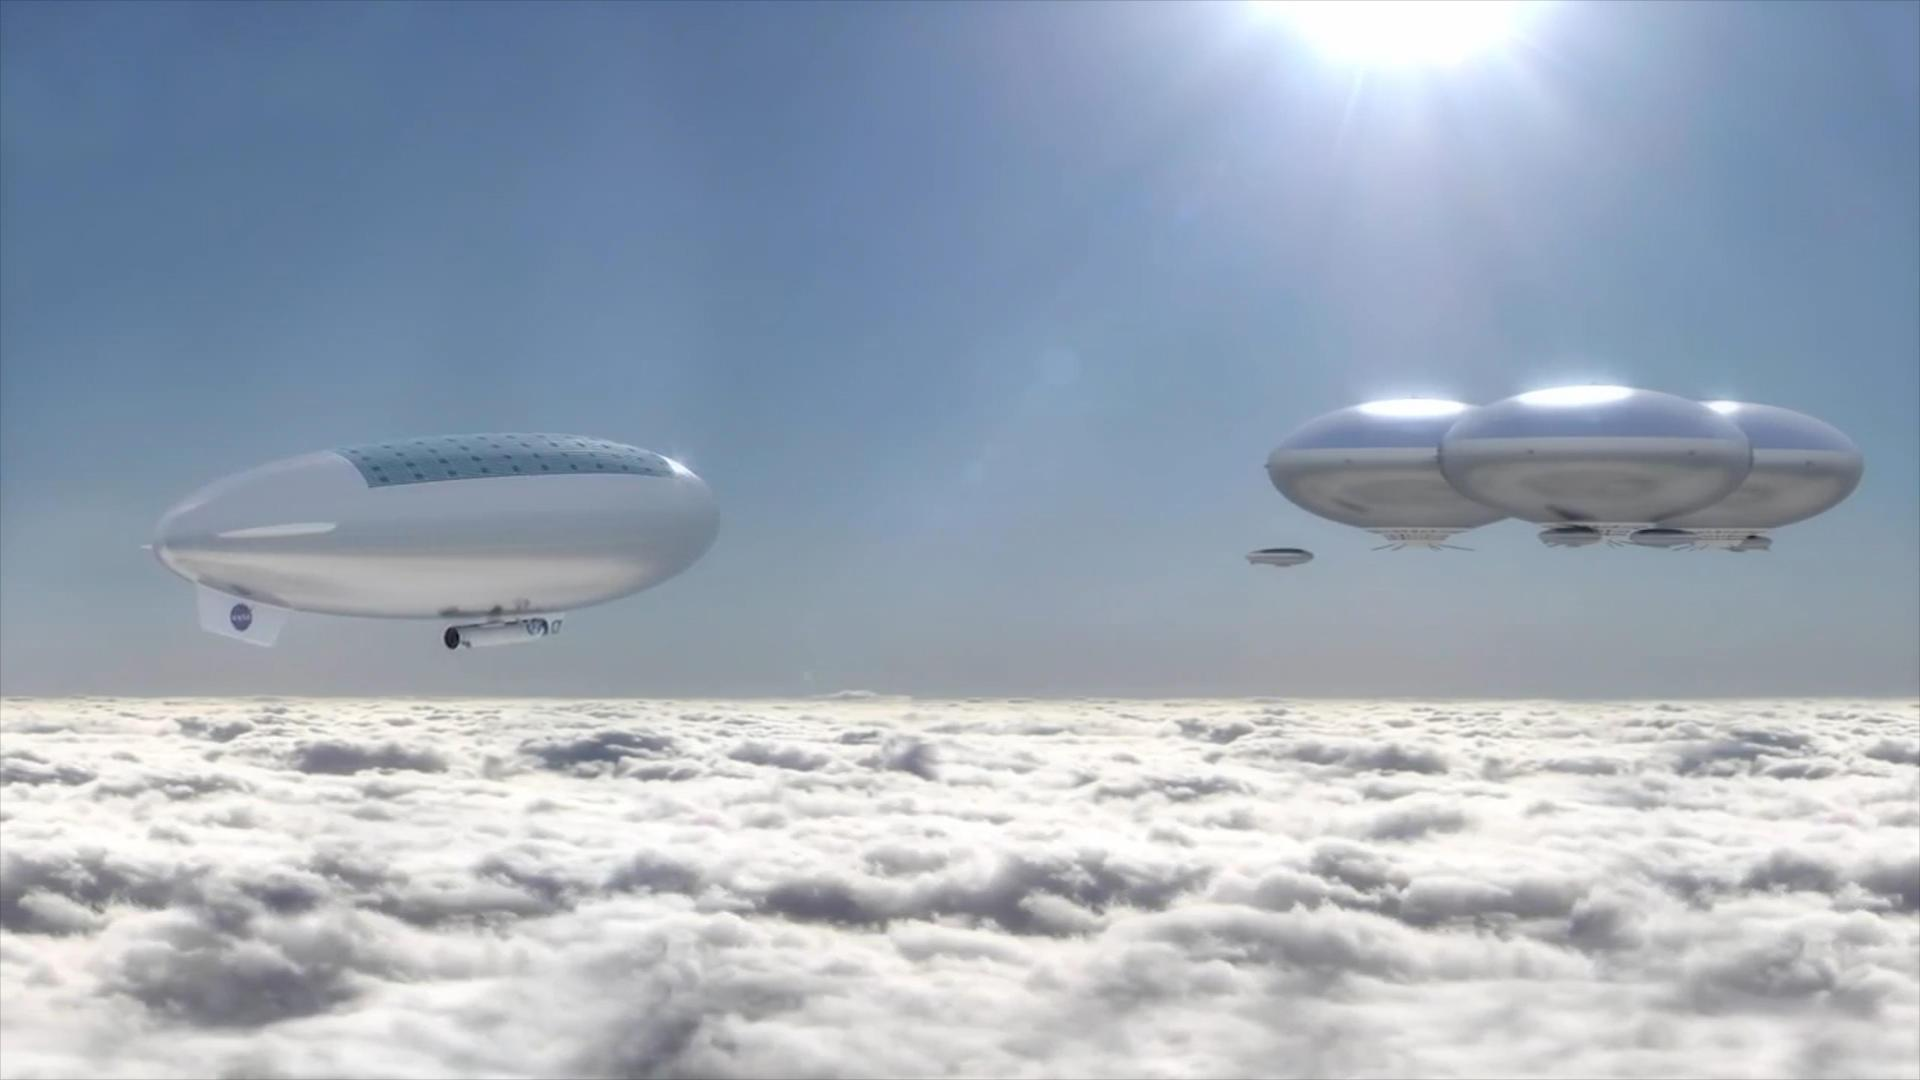 Tomorrow Daily 103: Man's bionic arms make history, NASA proposes cloud cities on Venus and more